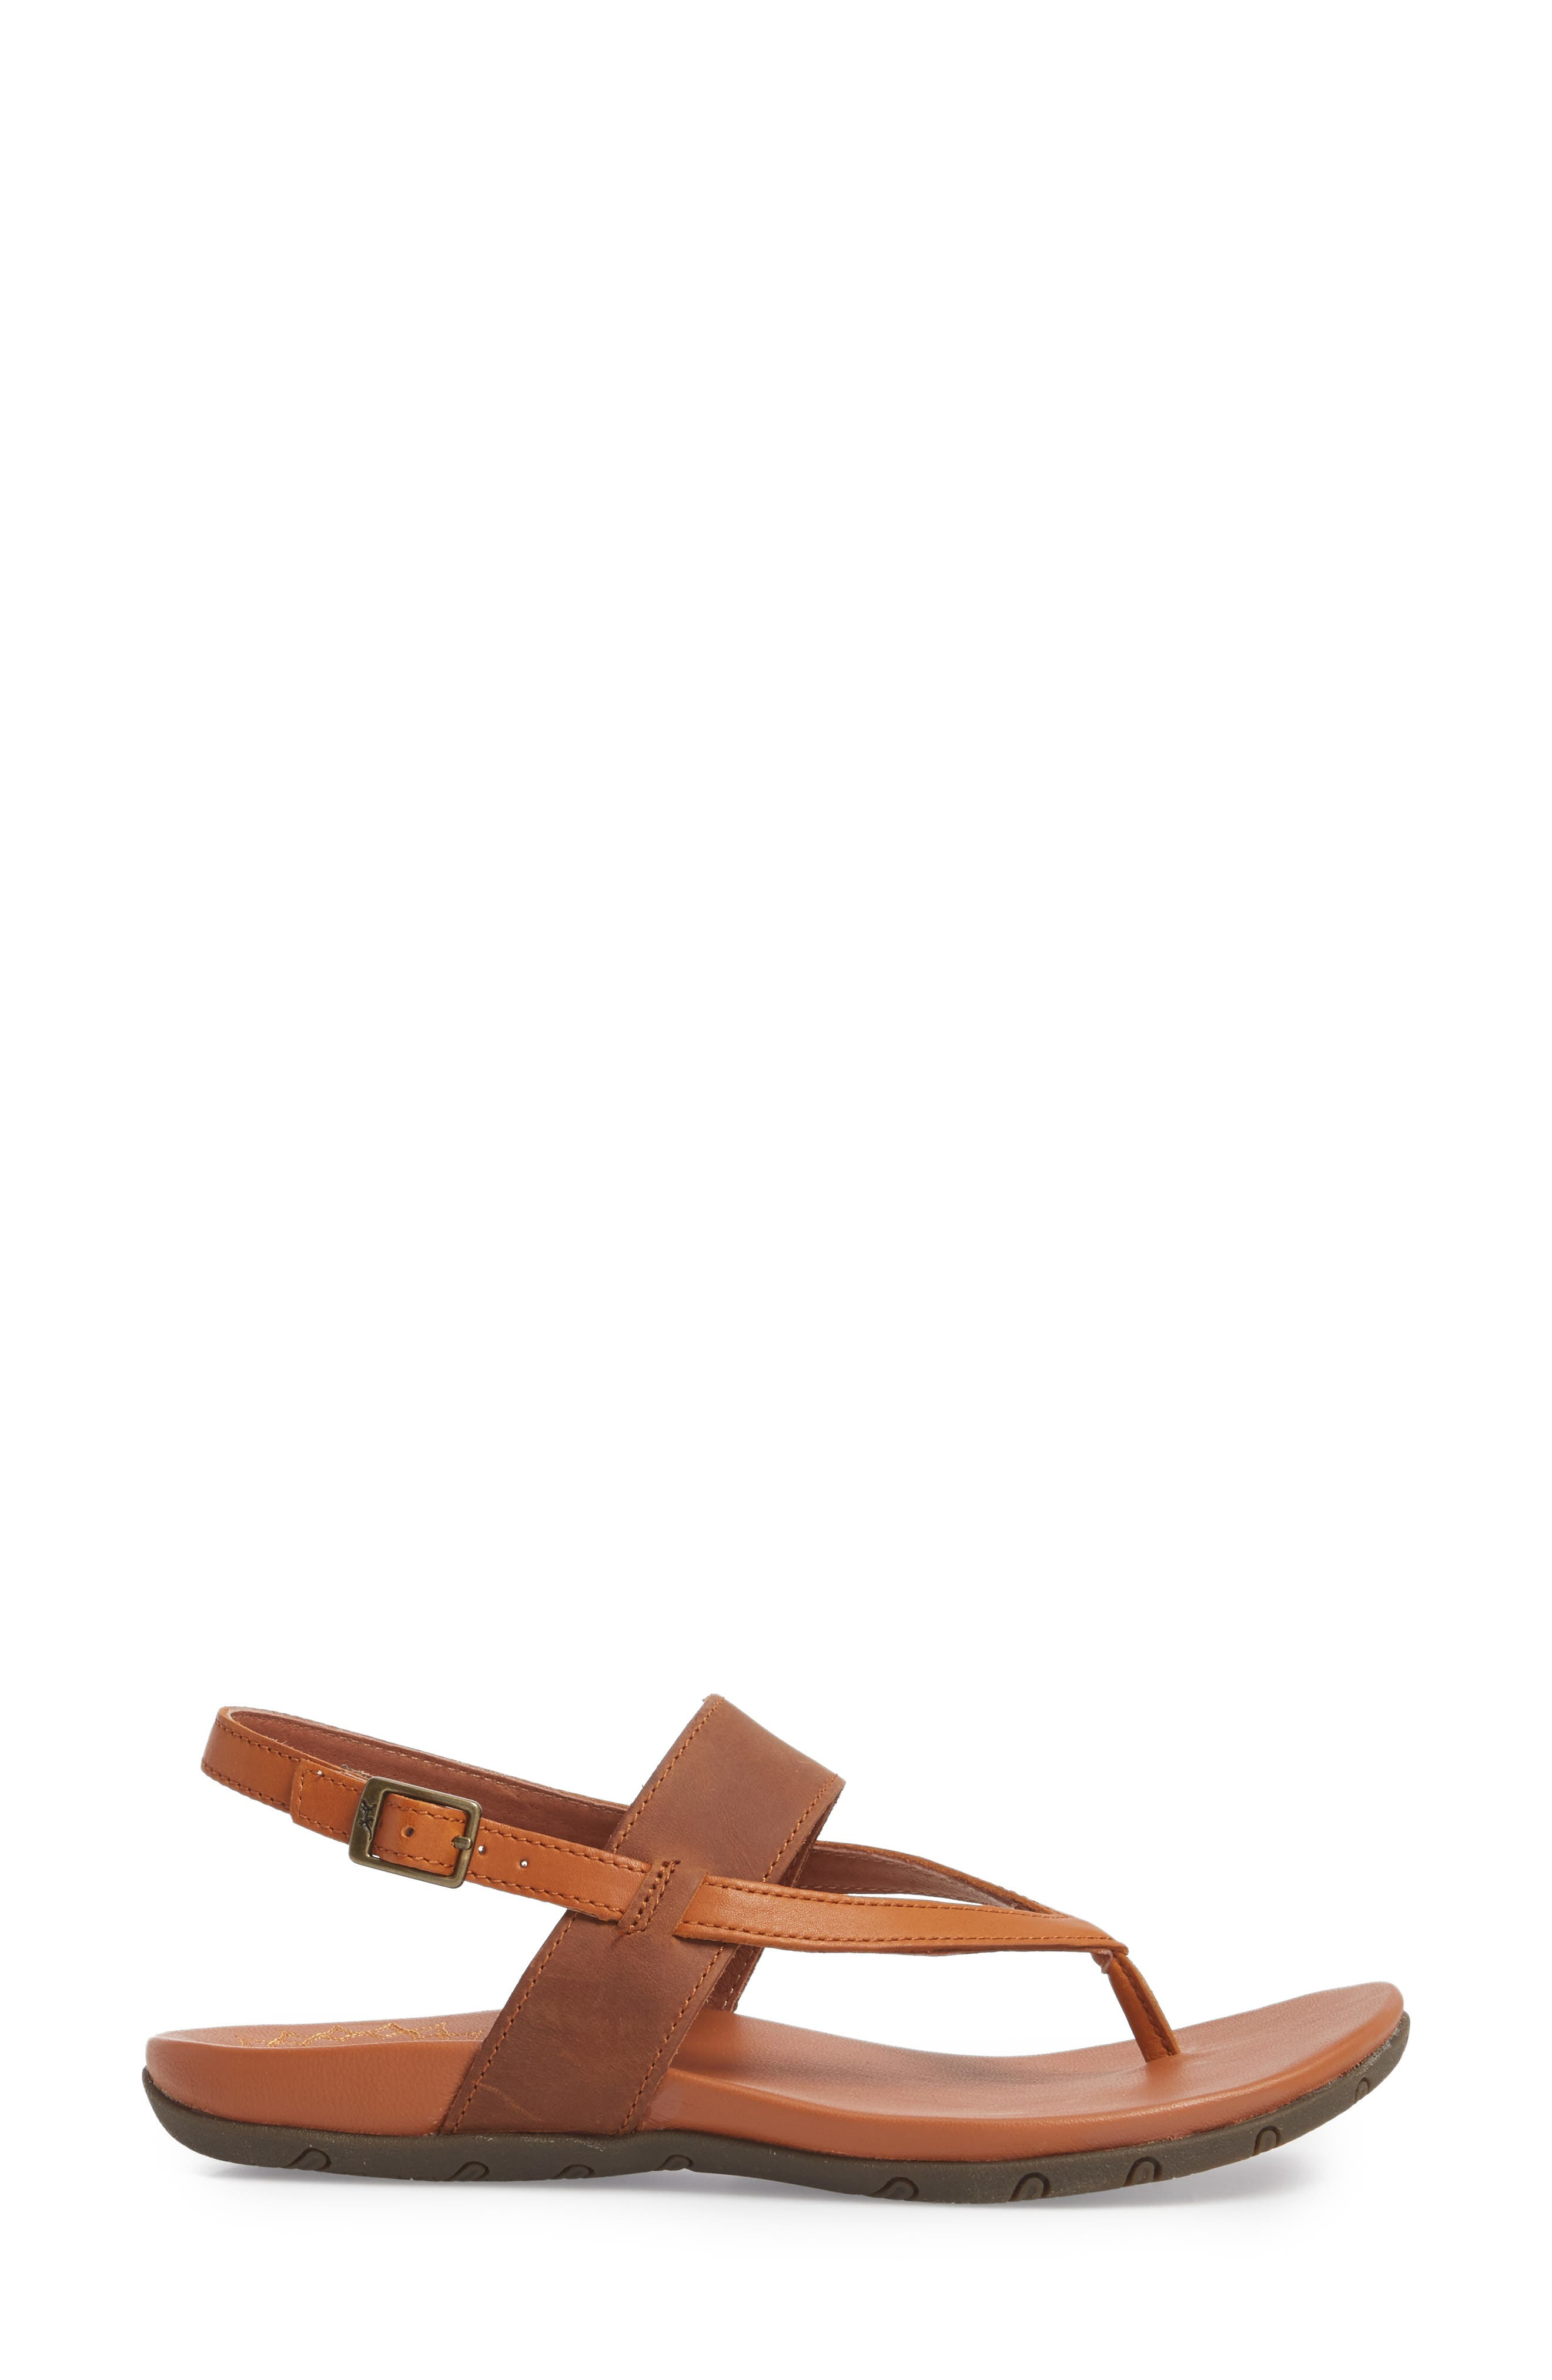 Maya II Sandal,                             Alternate thumbnail 3, color,                             Rust Leather